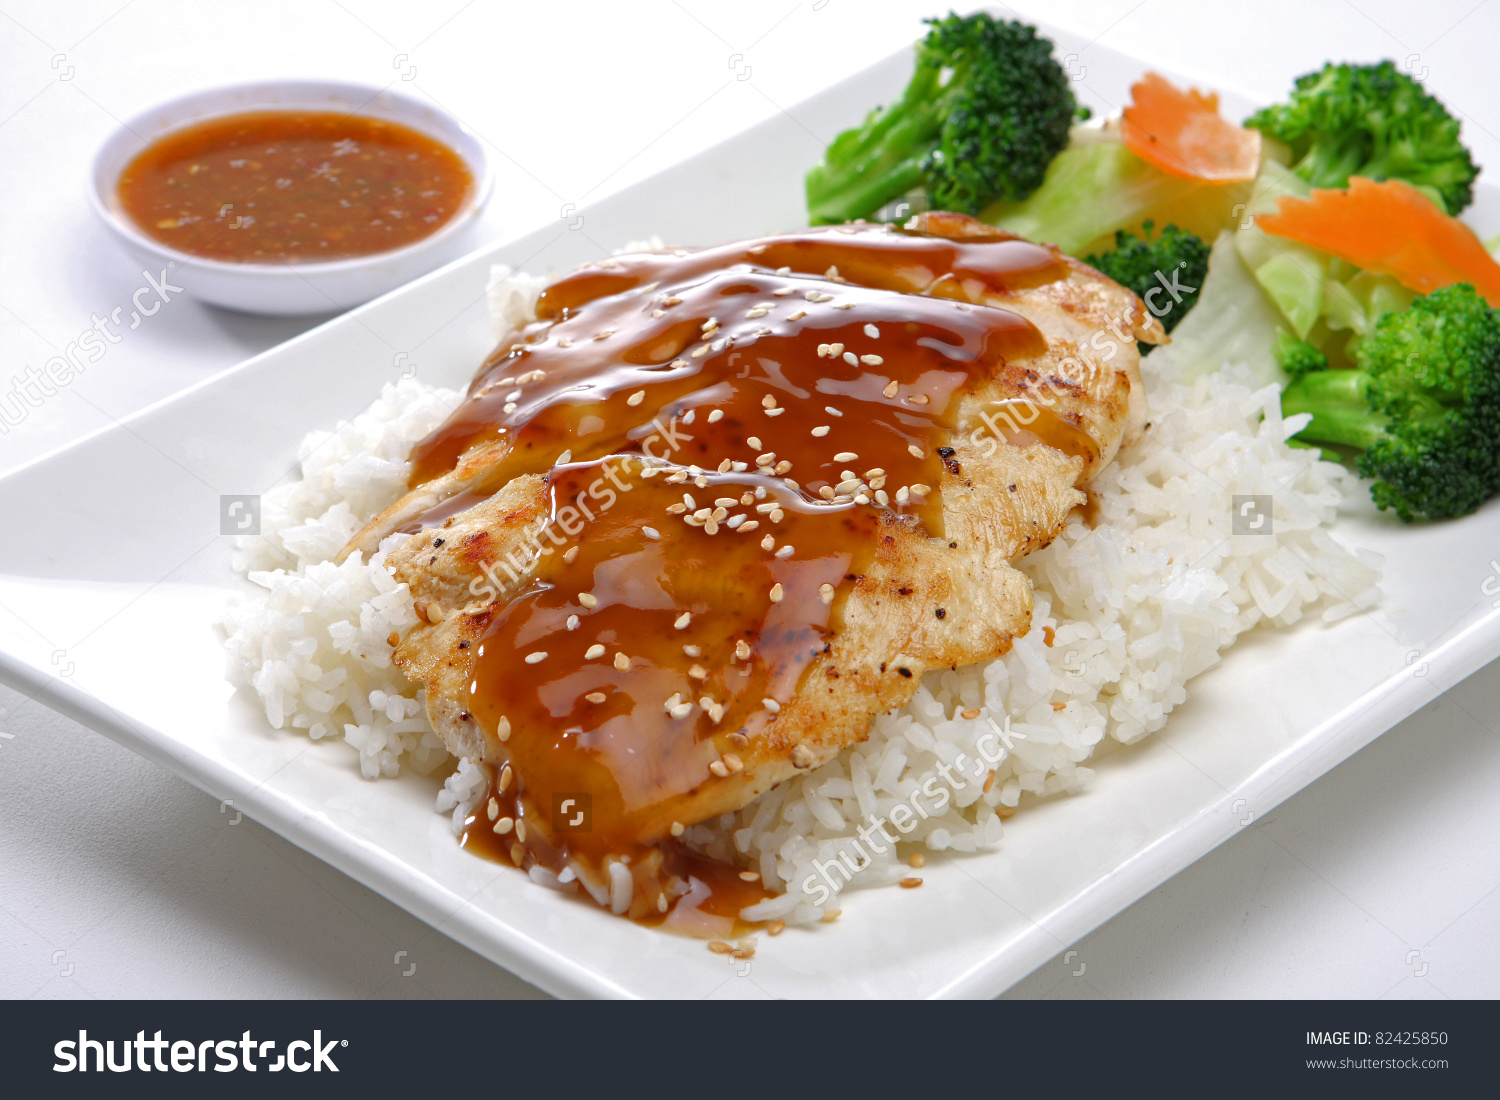 Teriyaki Chicken Steamed Rice Stock Photo 82425850.